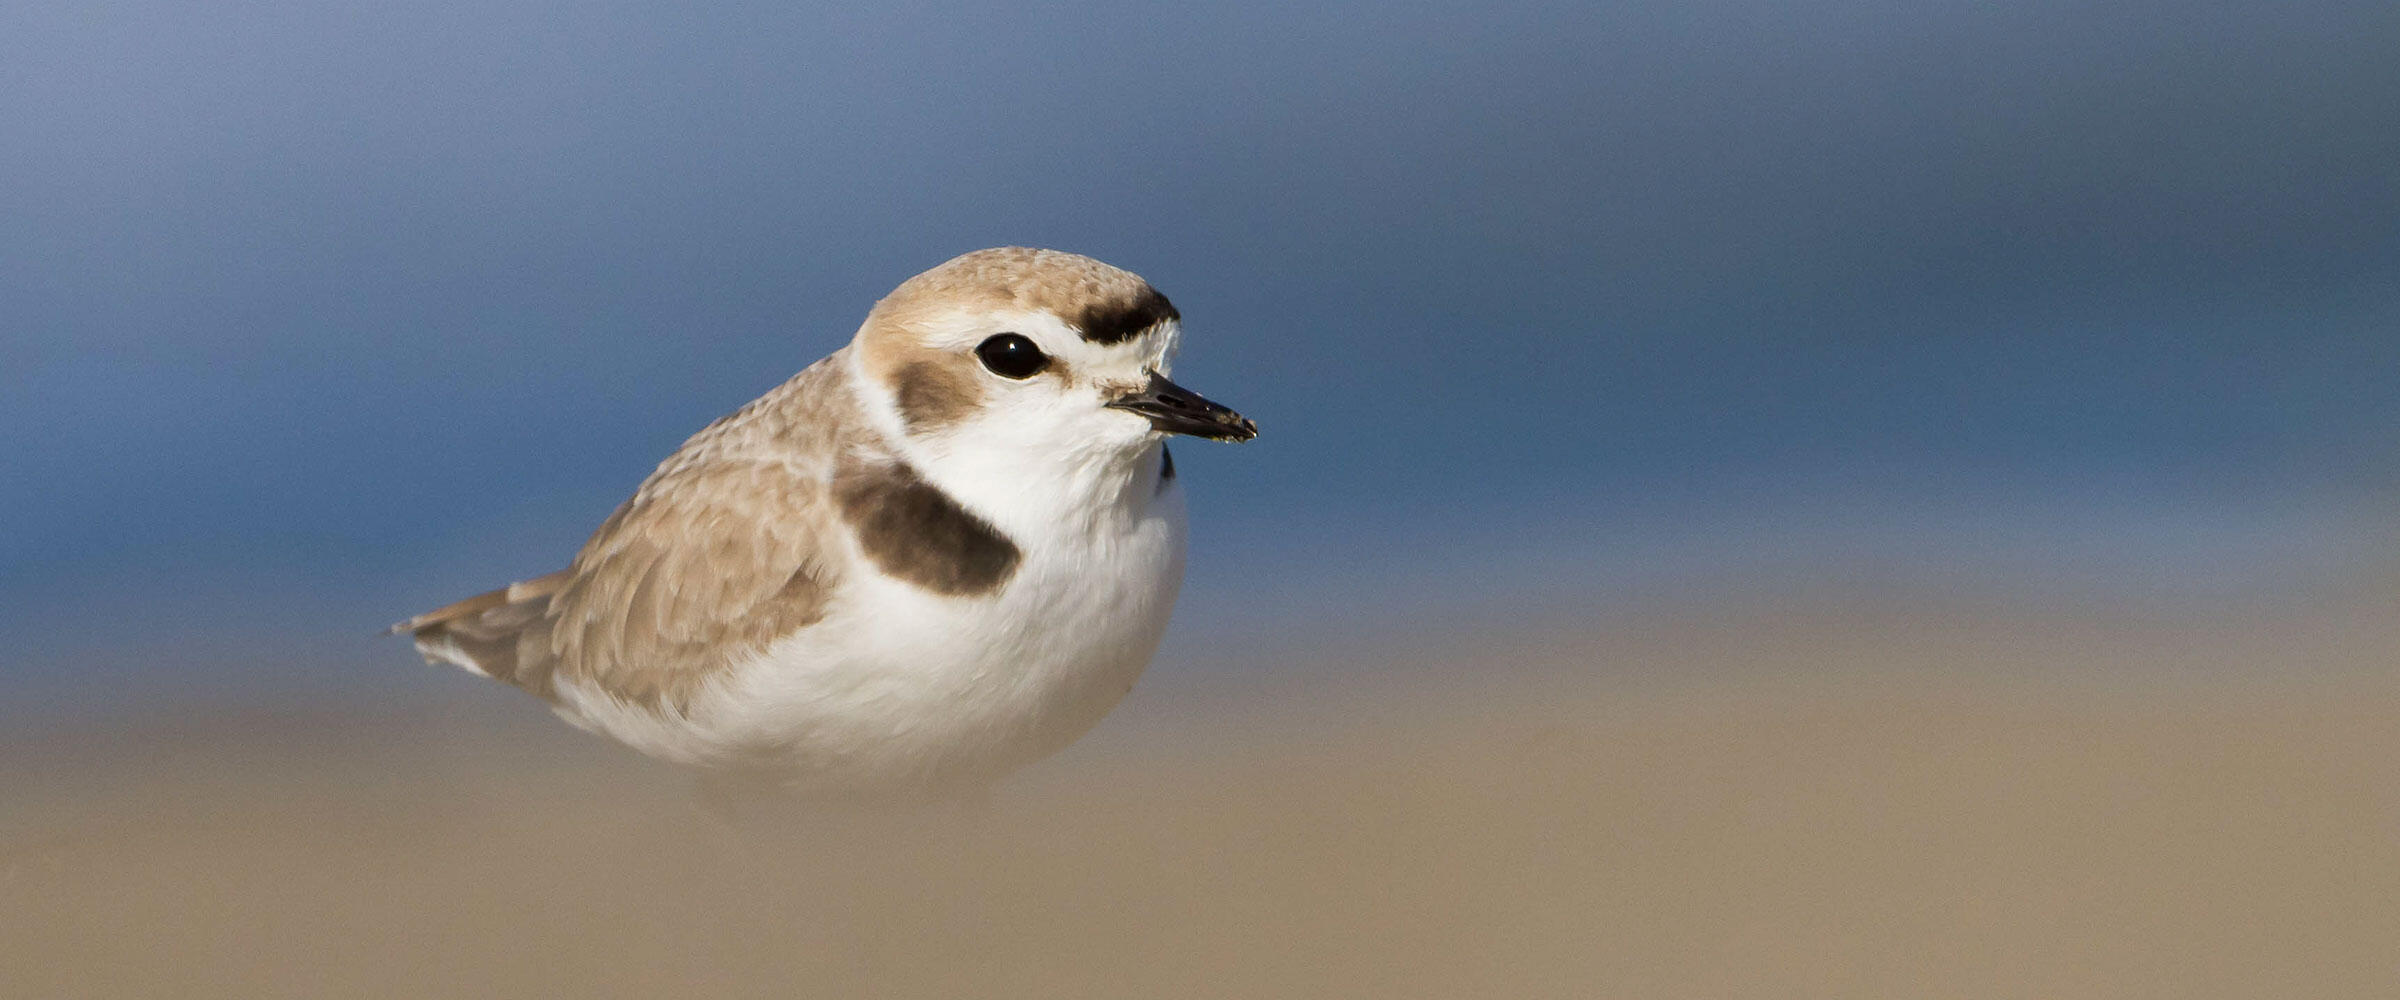 A Snowy Plover stands in front of water with a blurry brown foreground.